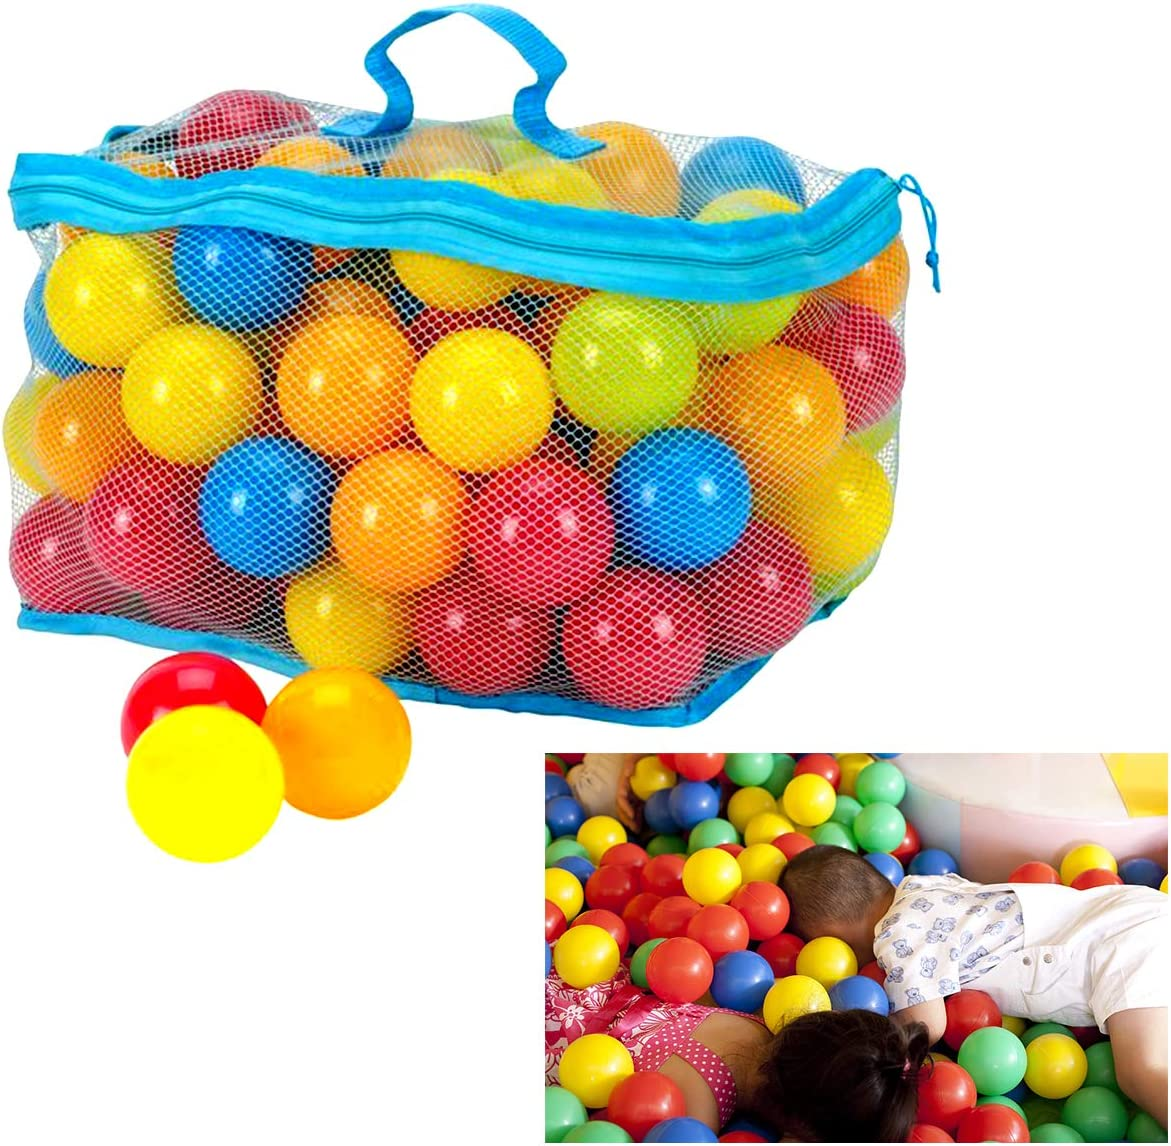 DaMohony 100pcs Multi-Colors Ocean Balls 6cm Colorful Plastic Ball with Reusable and Durable Storage Mesh Zipper Bag